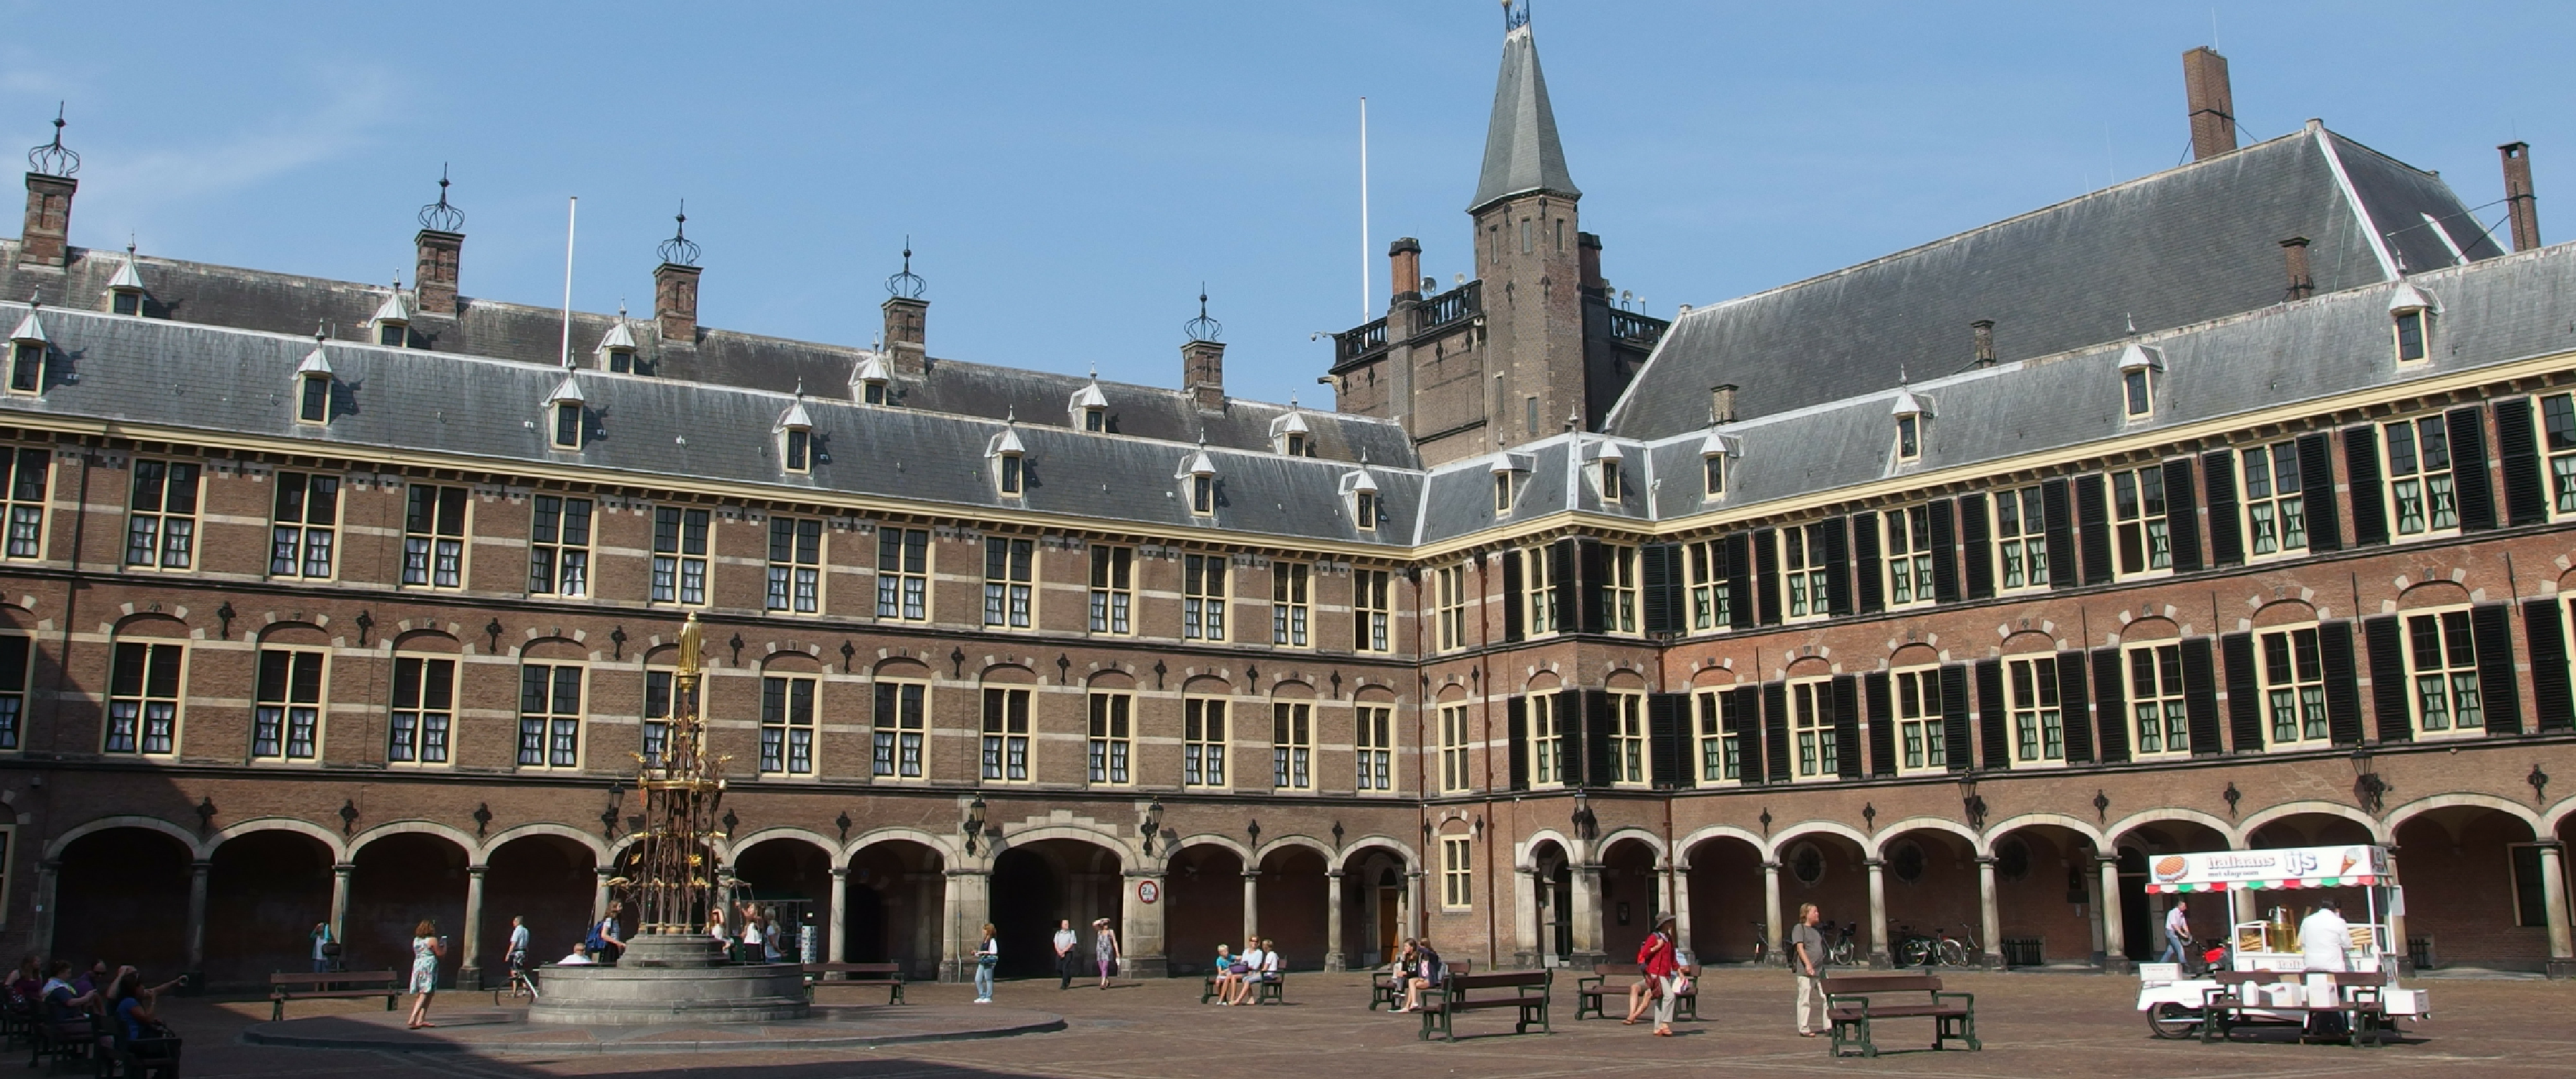 photo the hague den haag By Guilhem Vellut from Amsterdam, Netherlands (Binnenhof @ Centrum @ The Hague) [CC BY 2.0 (http://creativecommons.org/licenses/by/2.0)], via Wikimedia Commons